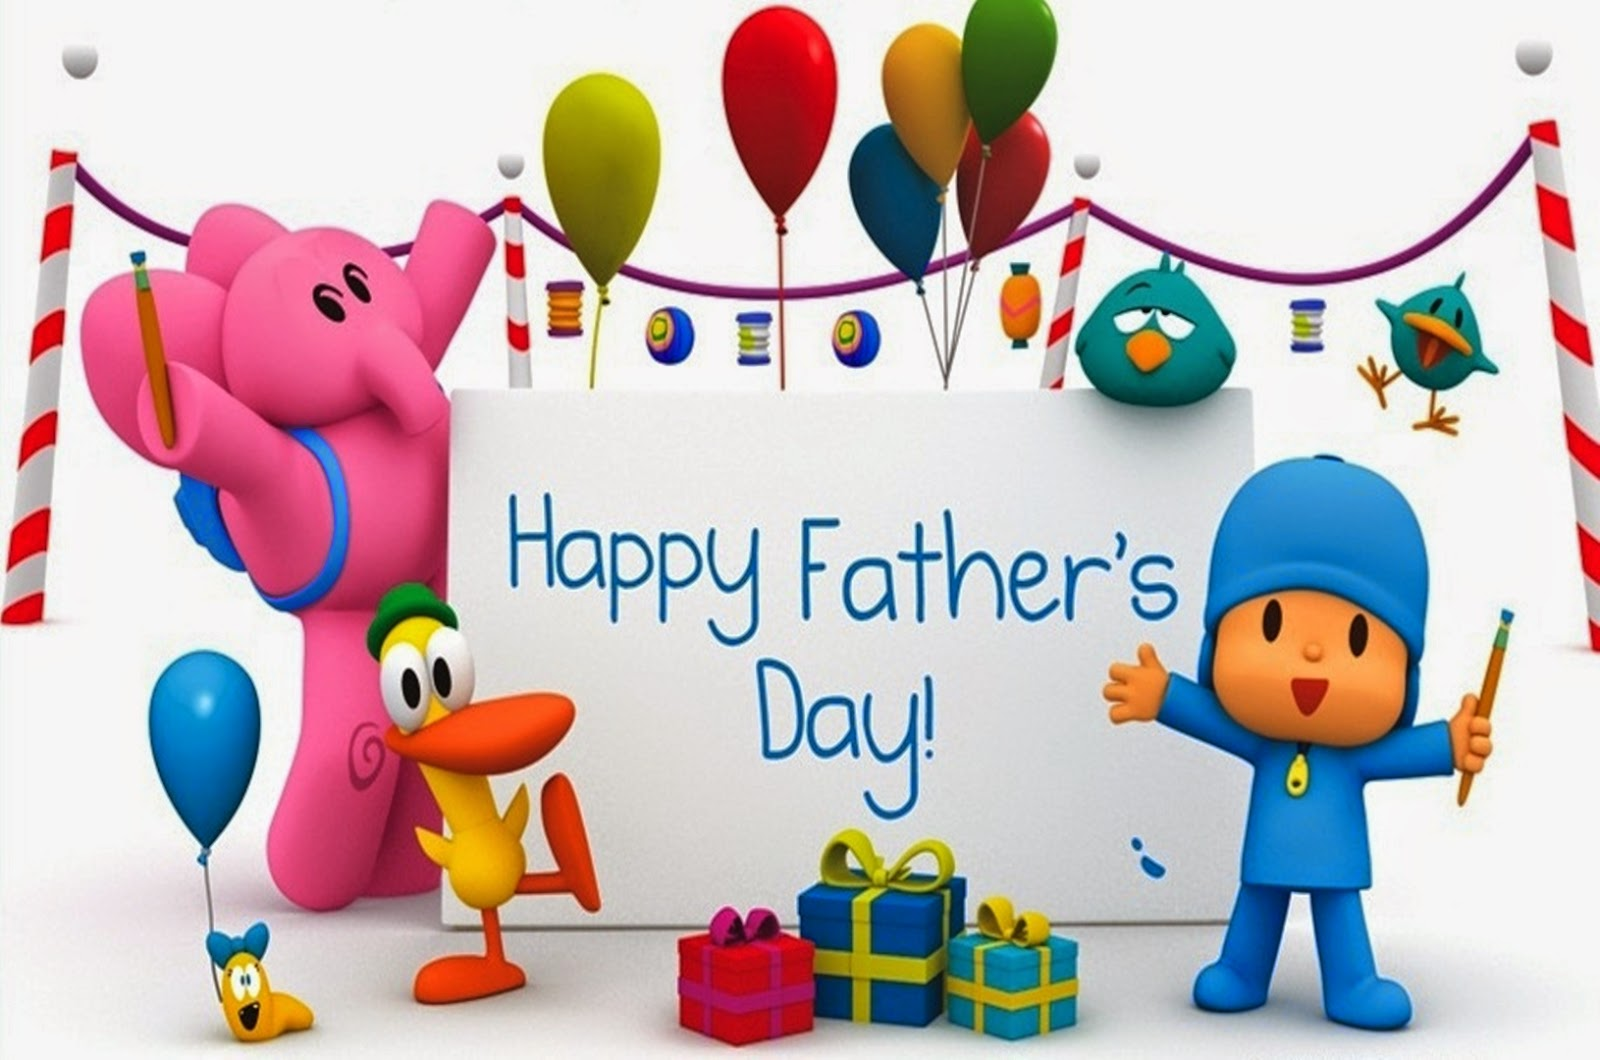 Happy Father's Day 2014 Wishing Image | Bangla Greetings ...